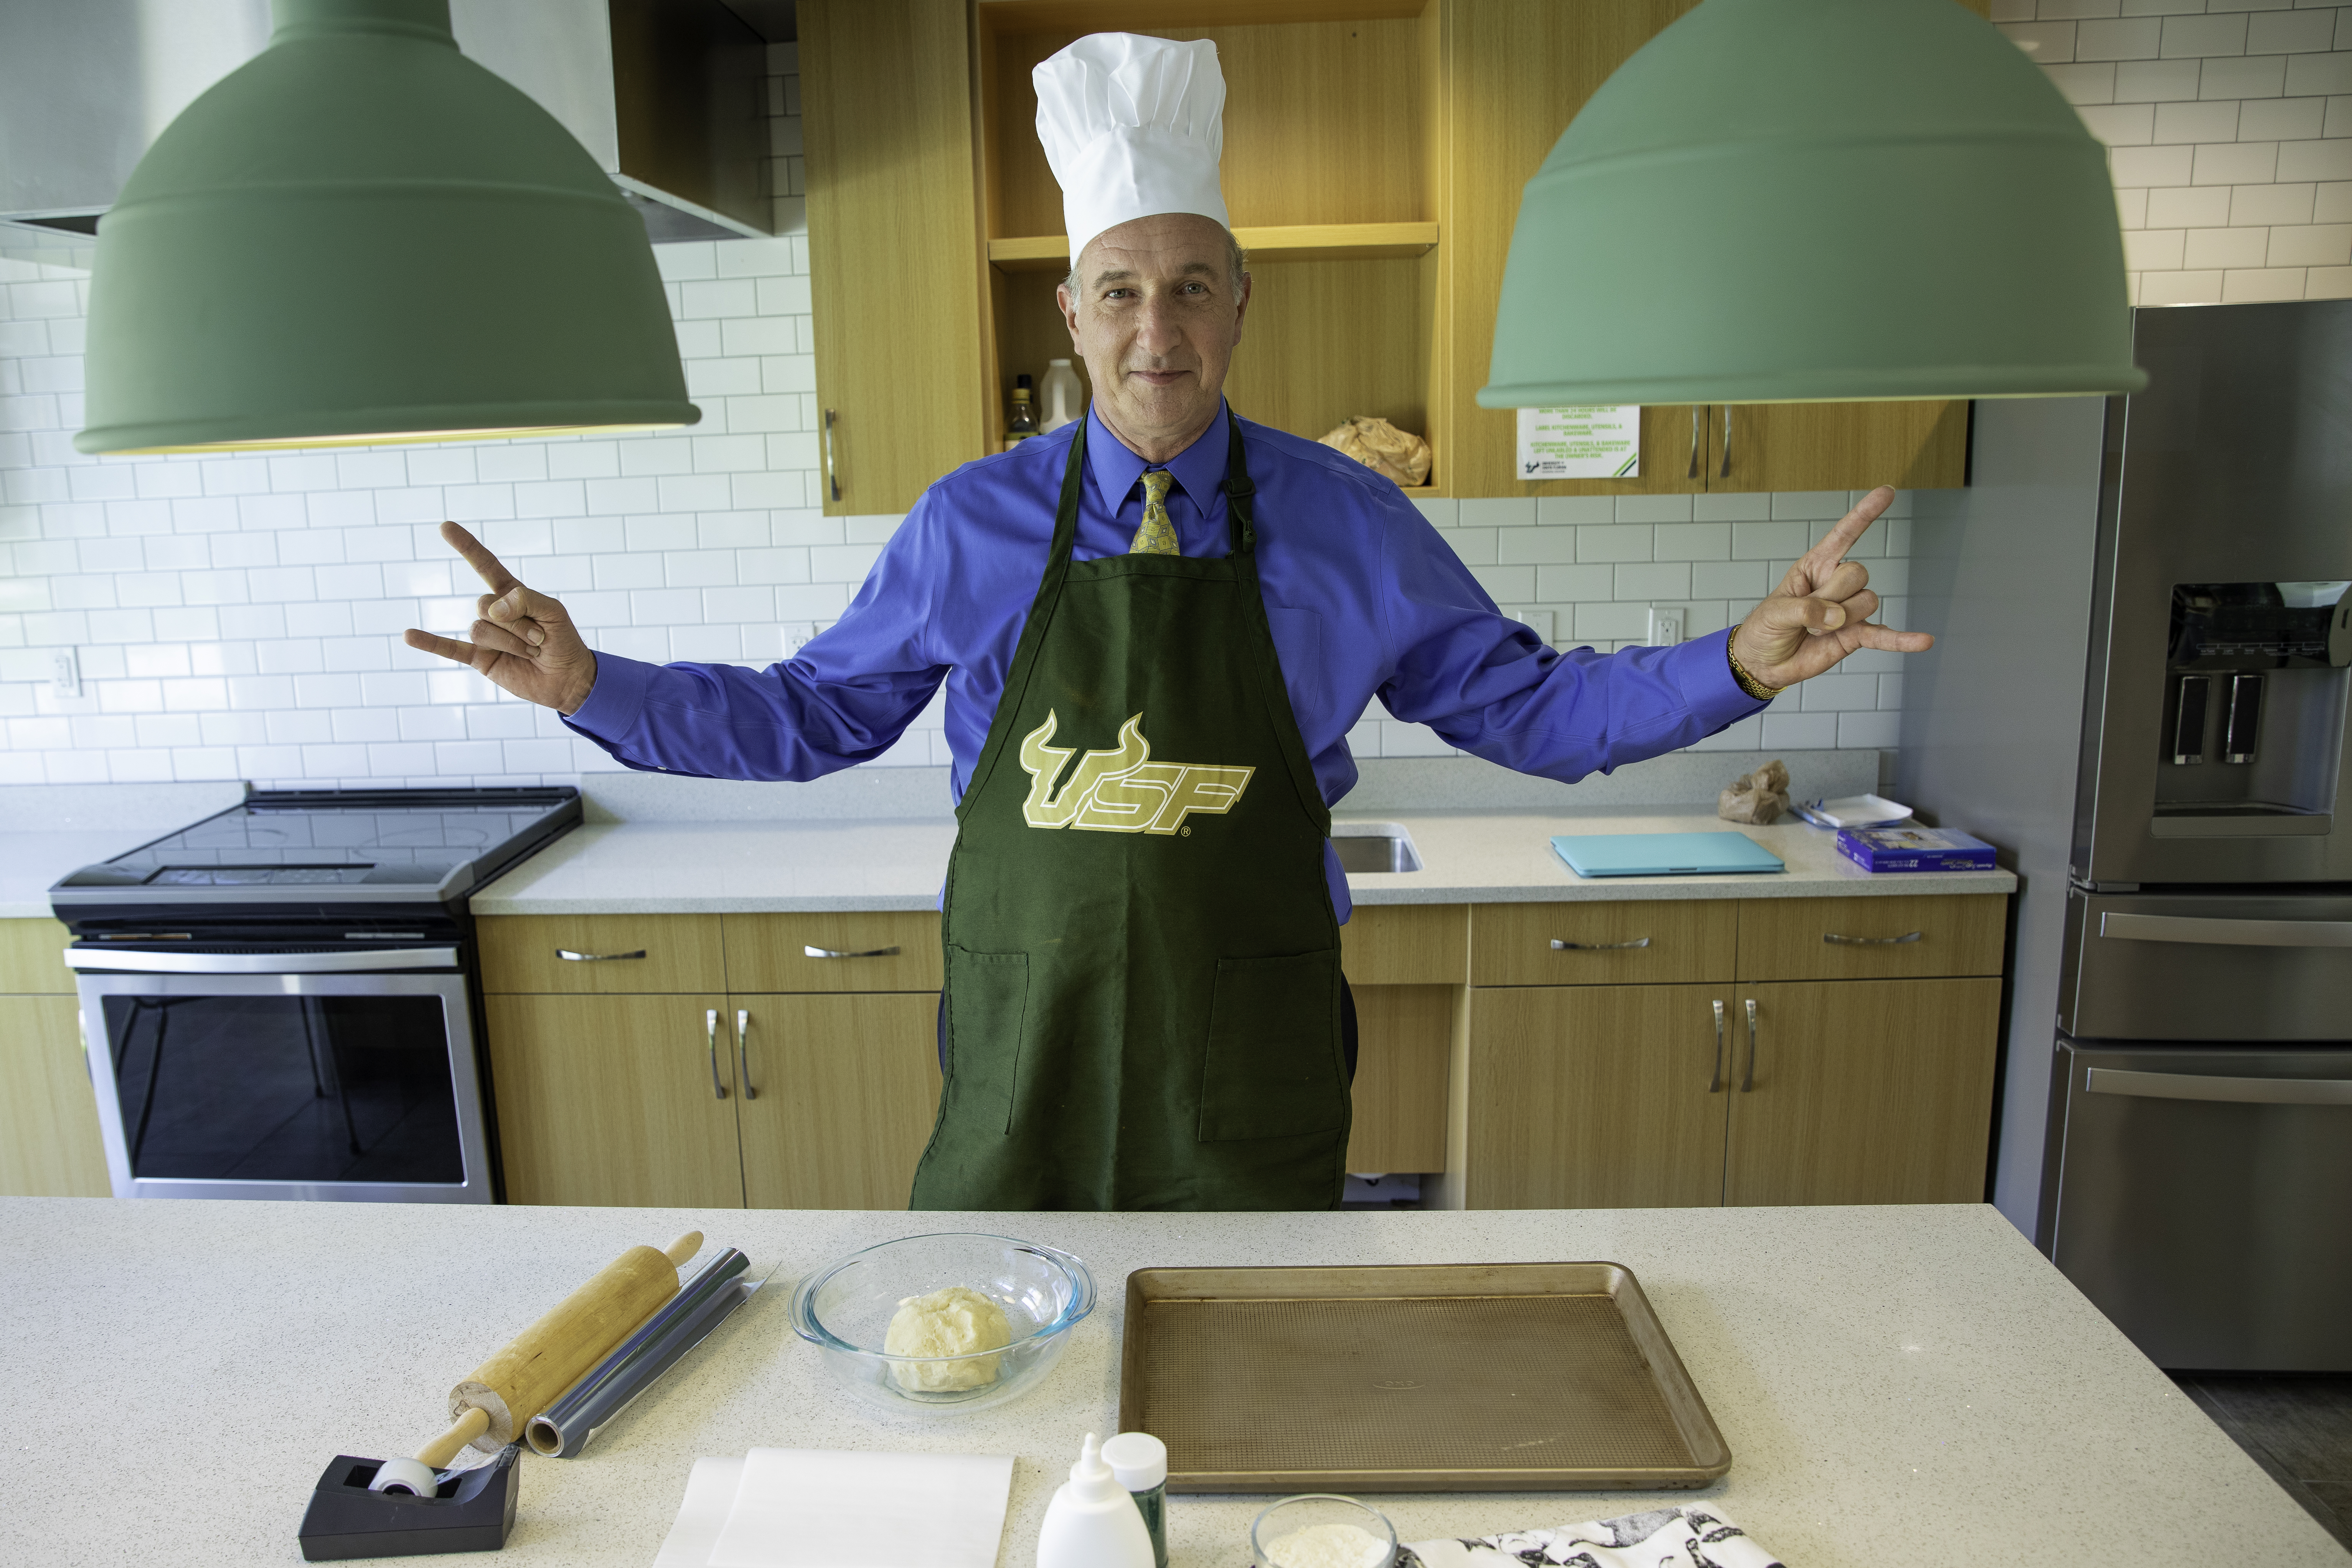 """Dean Besterfield gives the """"Go Bulls!"""" hand sign in a kitchen"""